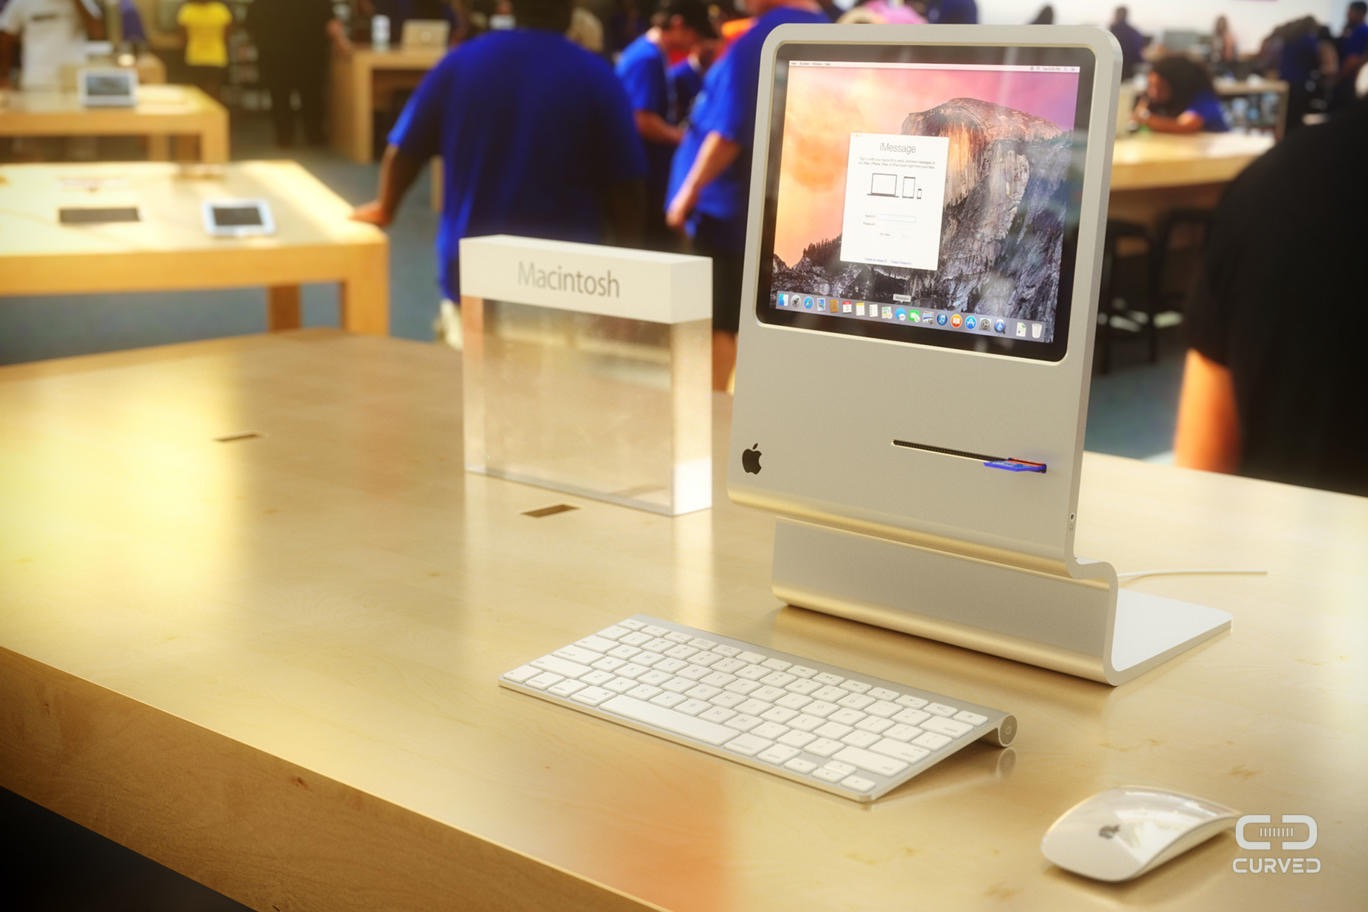 Curved Labs Macintosh Facelift